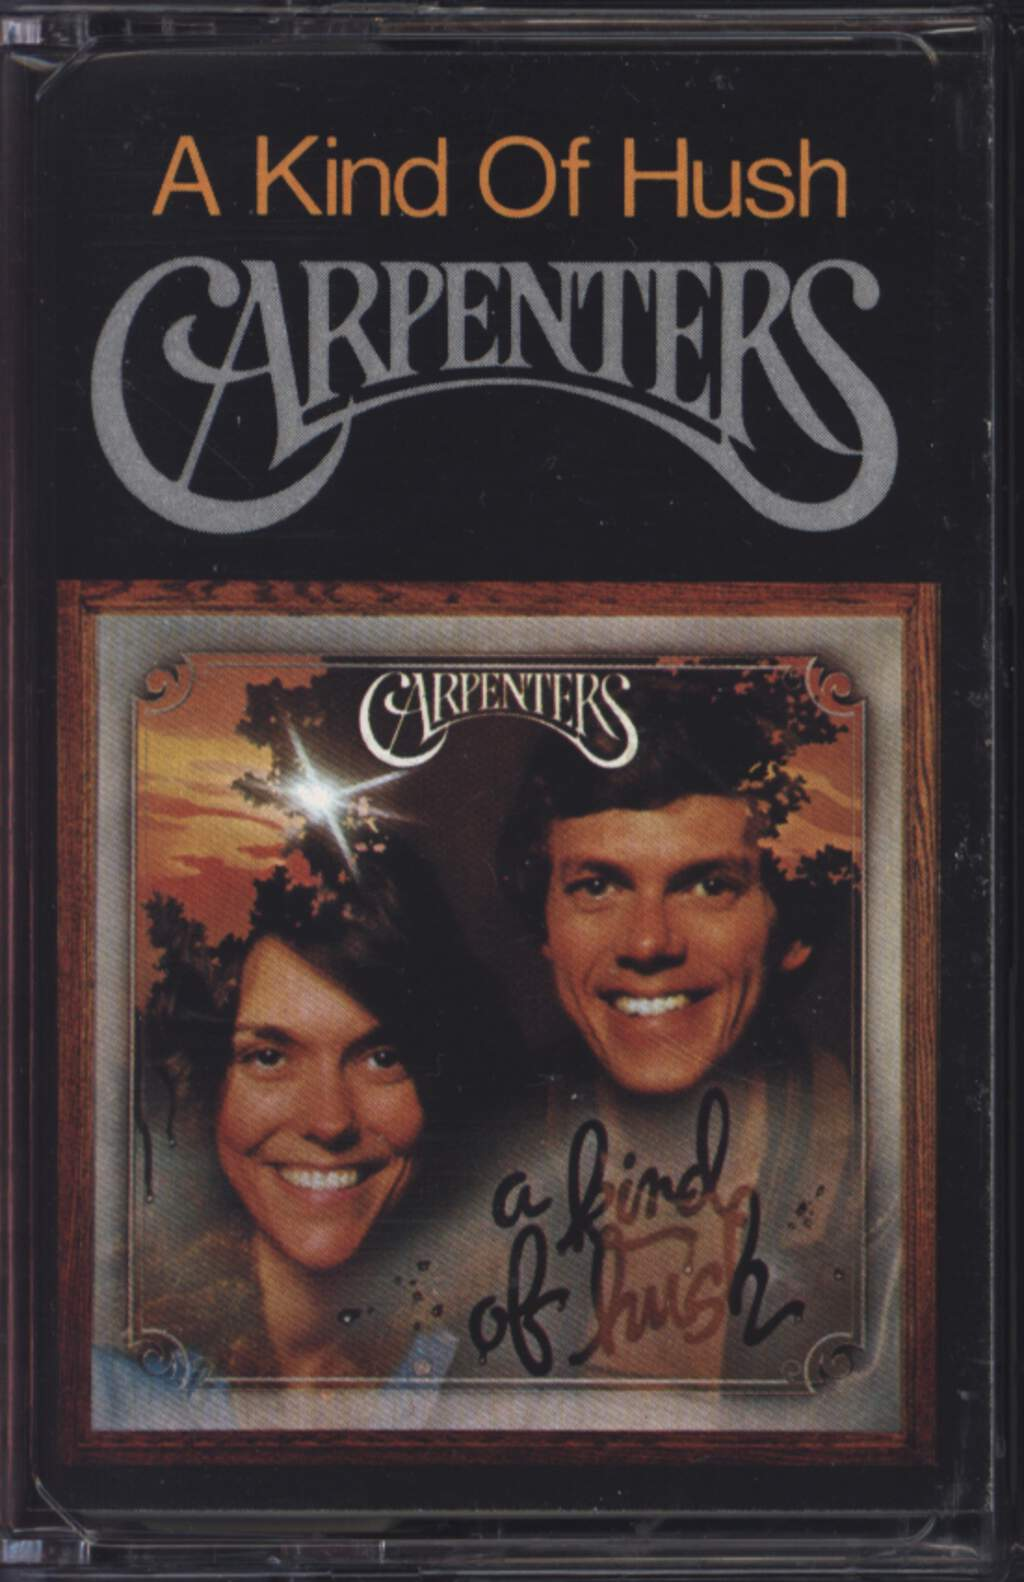 Carpenters: A Kind Of Hush, Compact Cassette